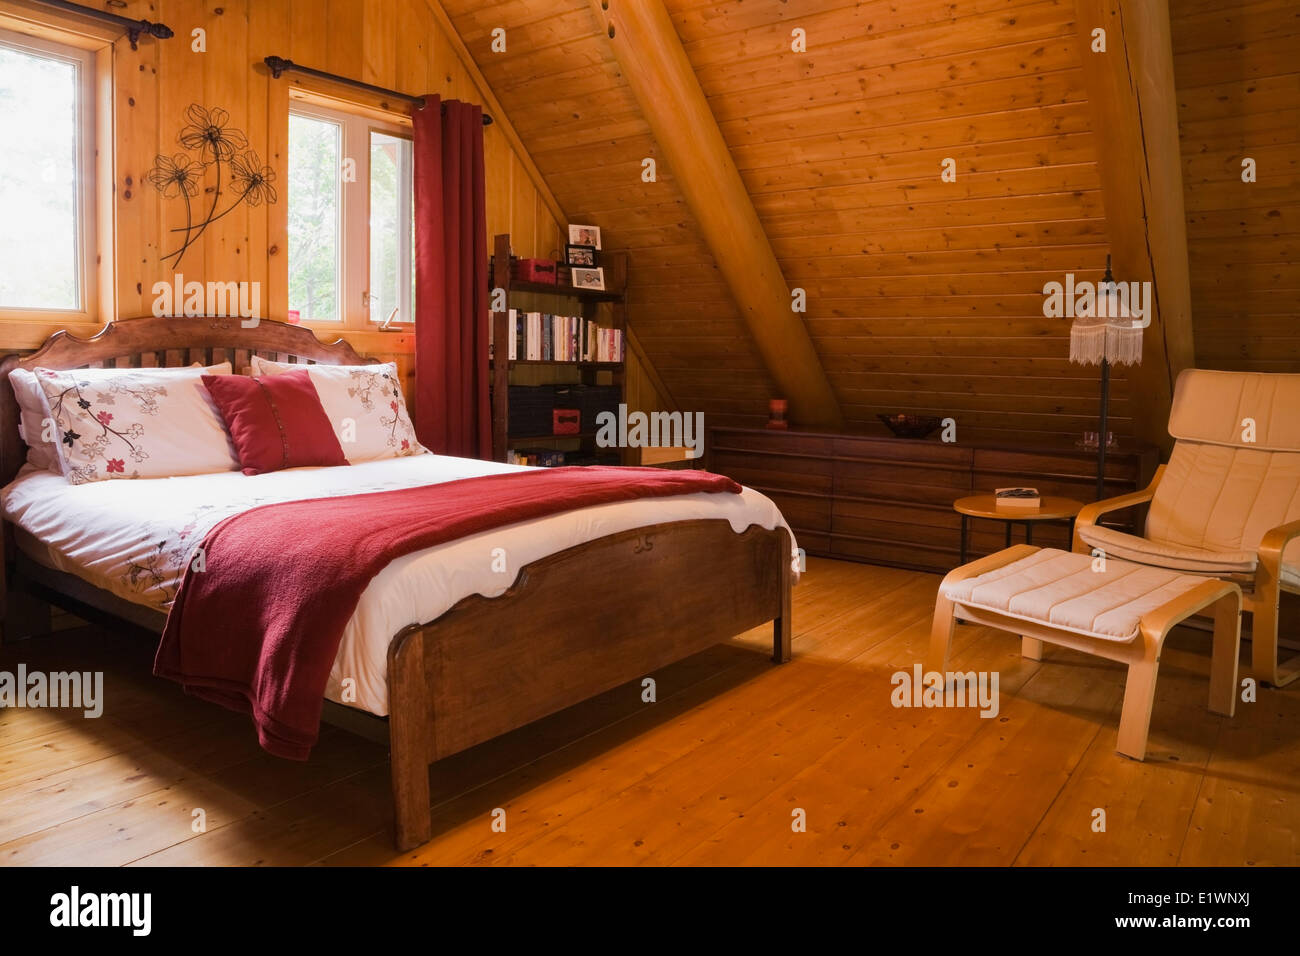 Quebec Bedroom Furniture Master Bedroom On The Upstairs Floor Inside A Residential Log Home